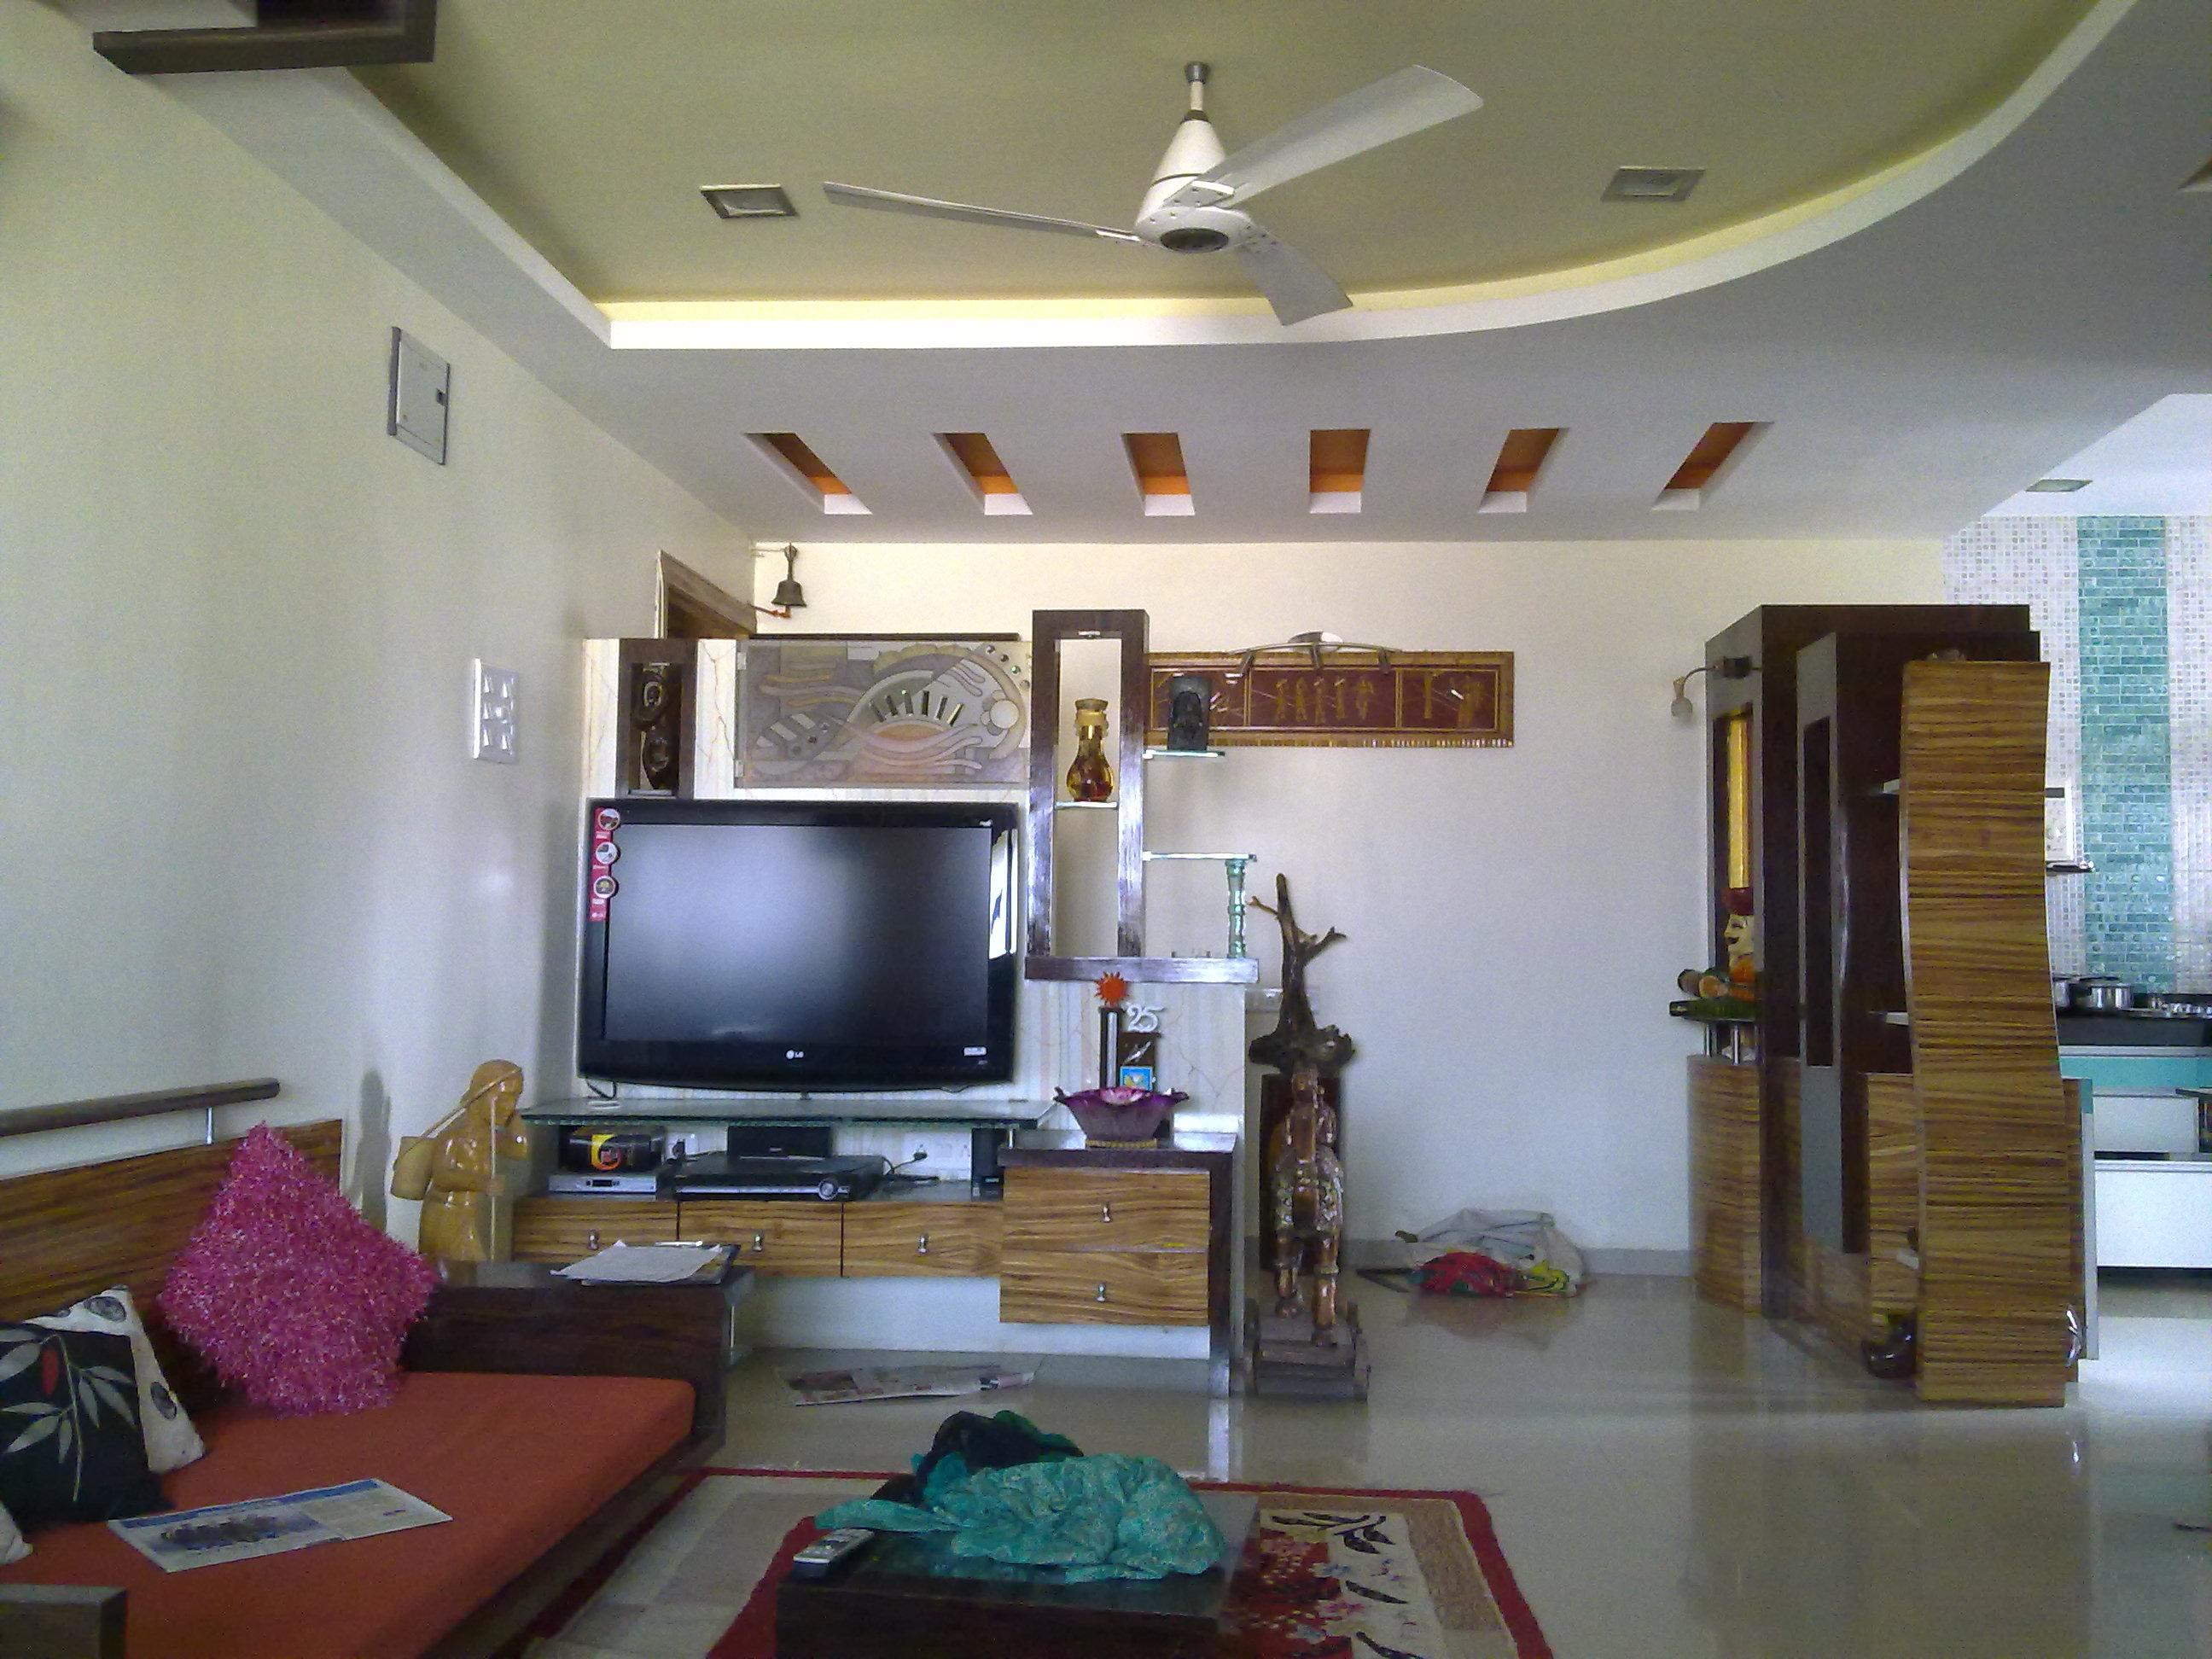 Ceiling design and room decor